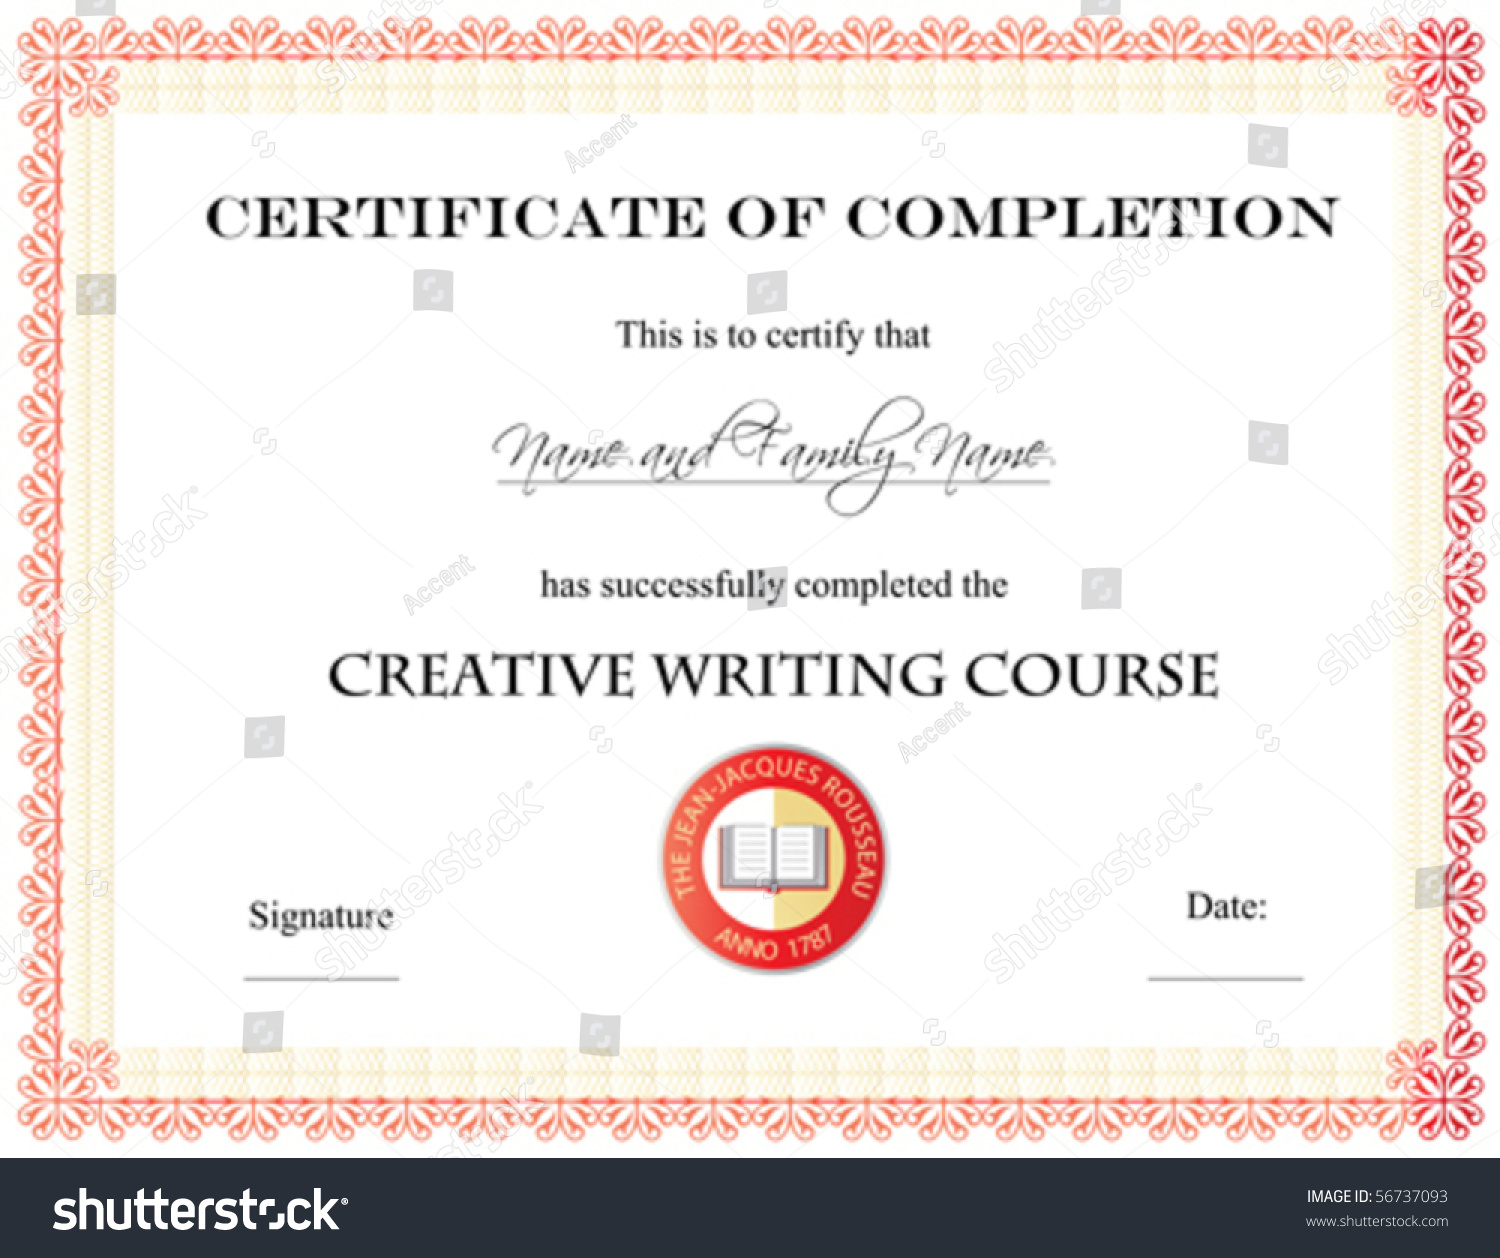 Vector certificate completion template 56737093 vector certificate of completion template yelopaper